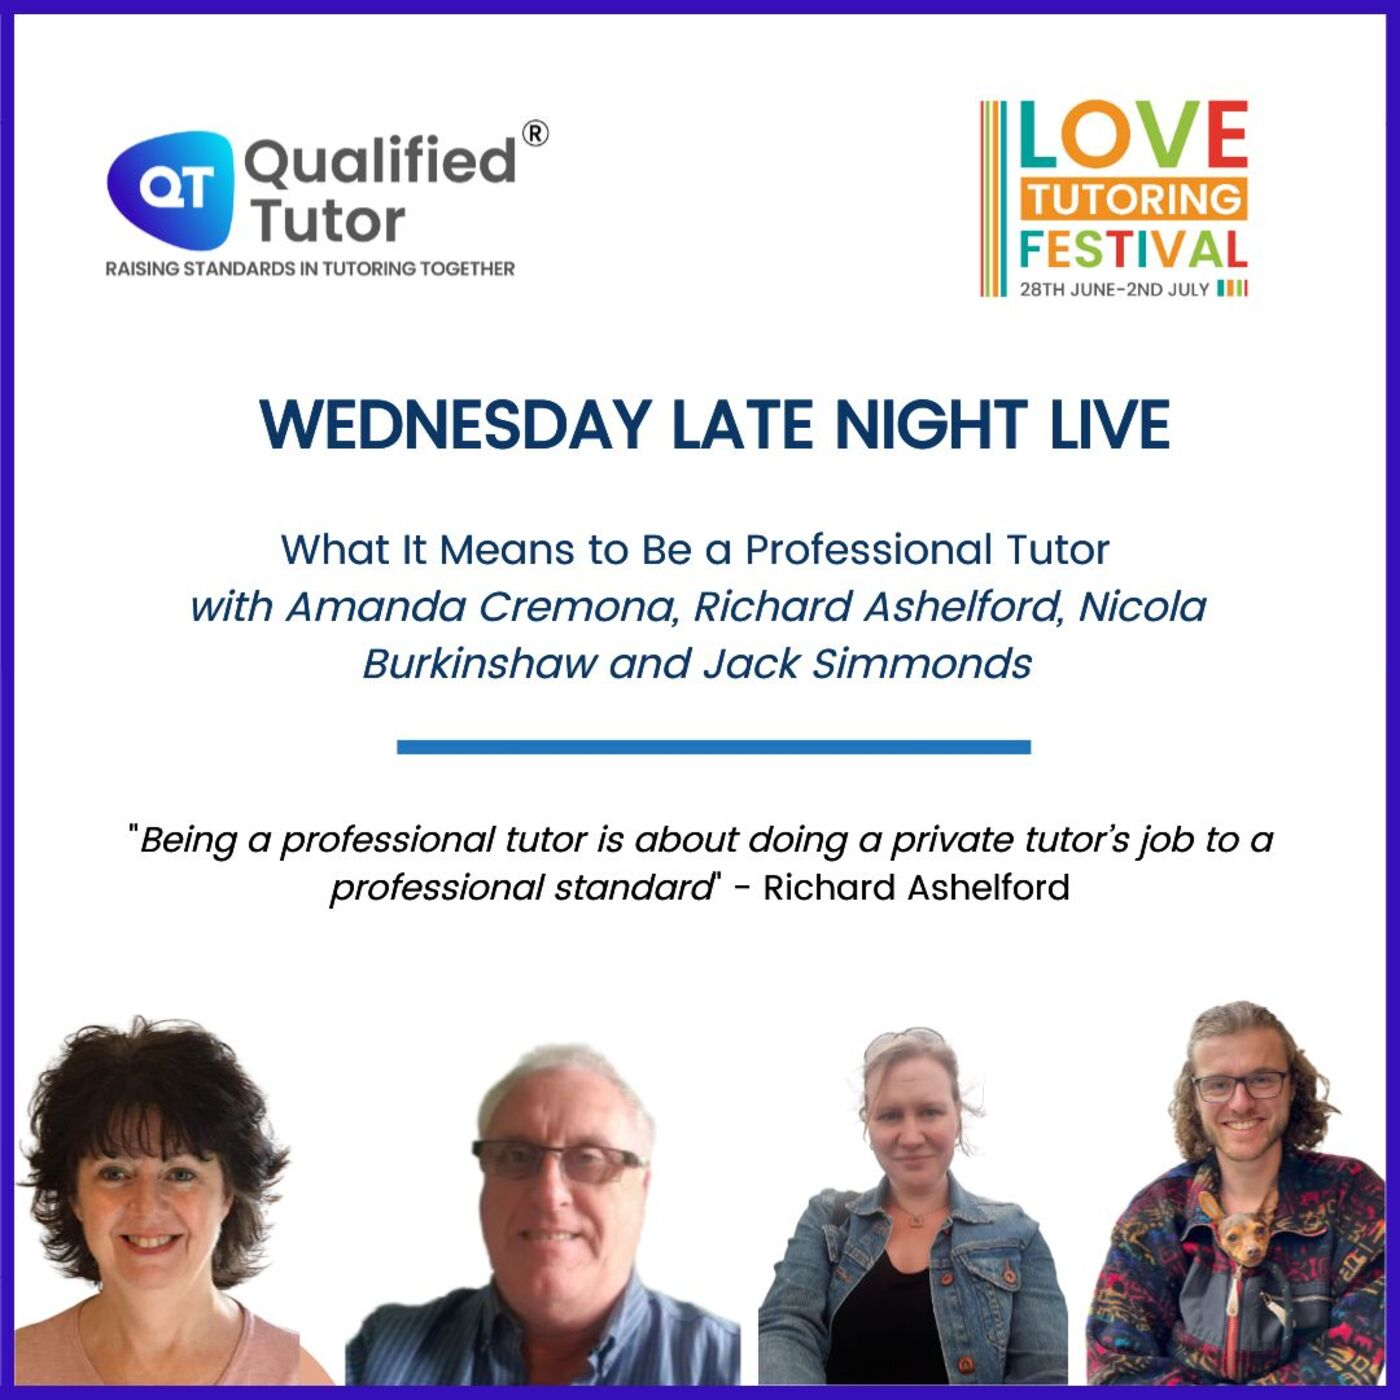 Love Tutoring Festival 2021 Podcast #3 - What It Means to Be a Professional Tutor